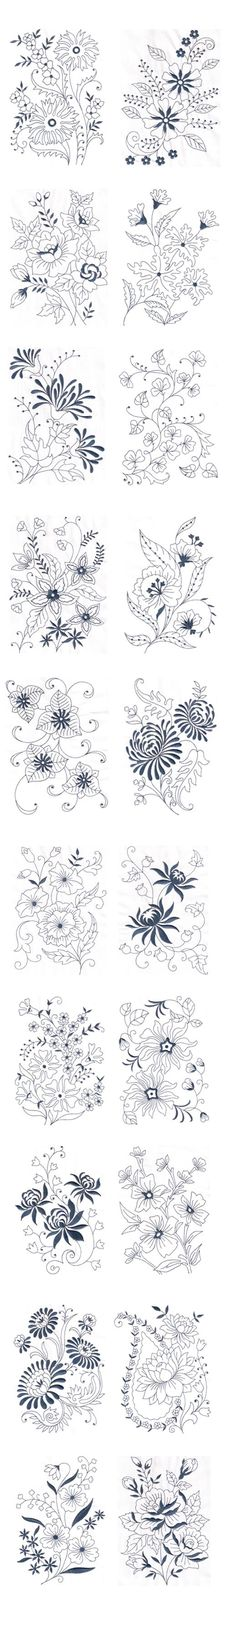 Vintage Floral Design - Machine Embroidery Design on Behance: